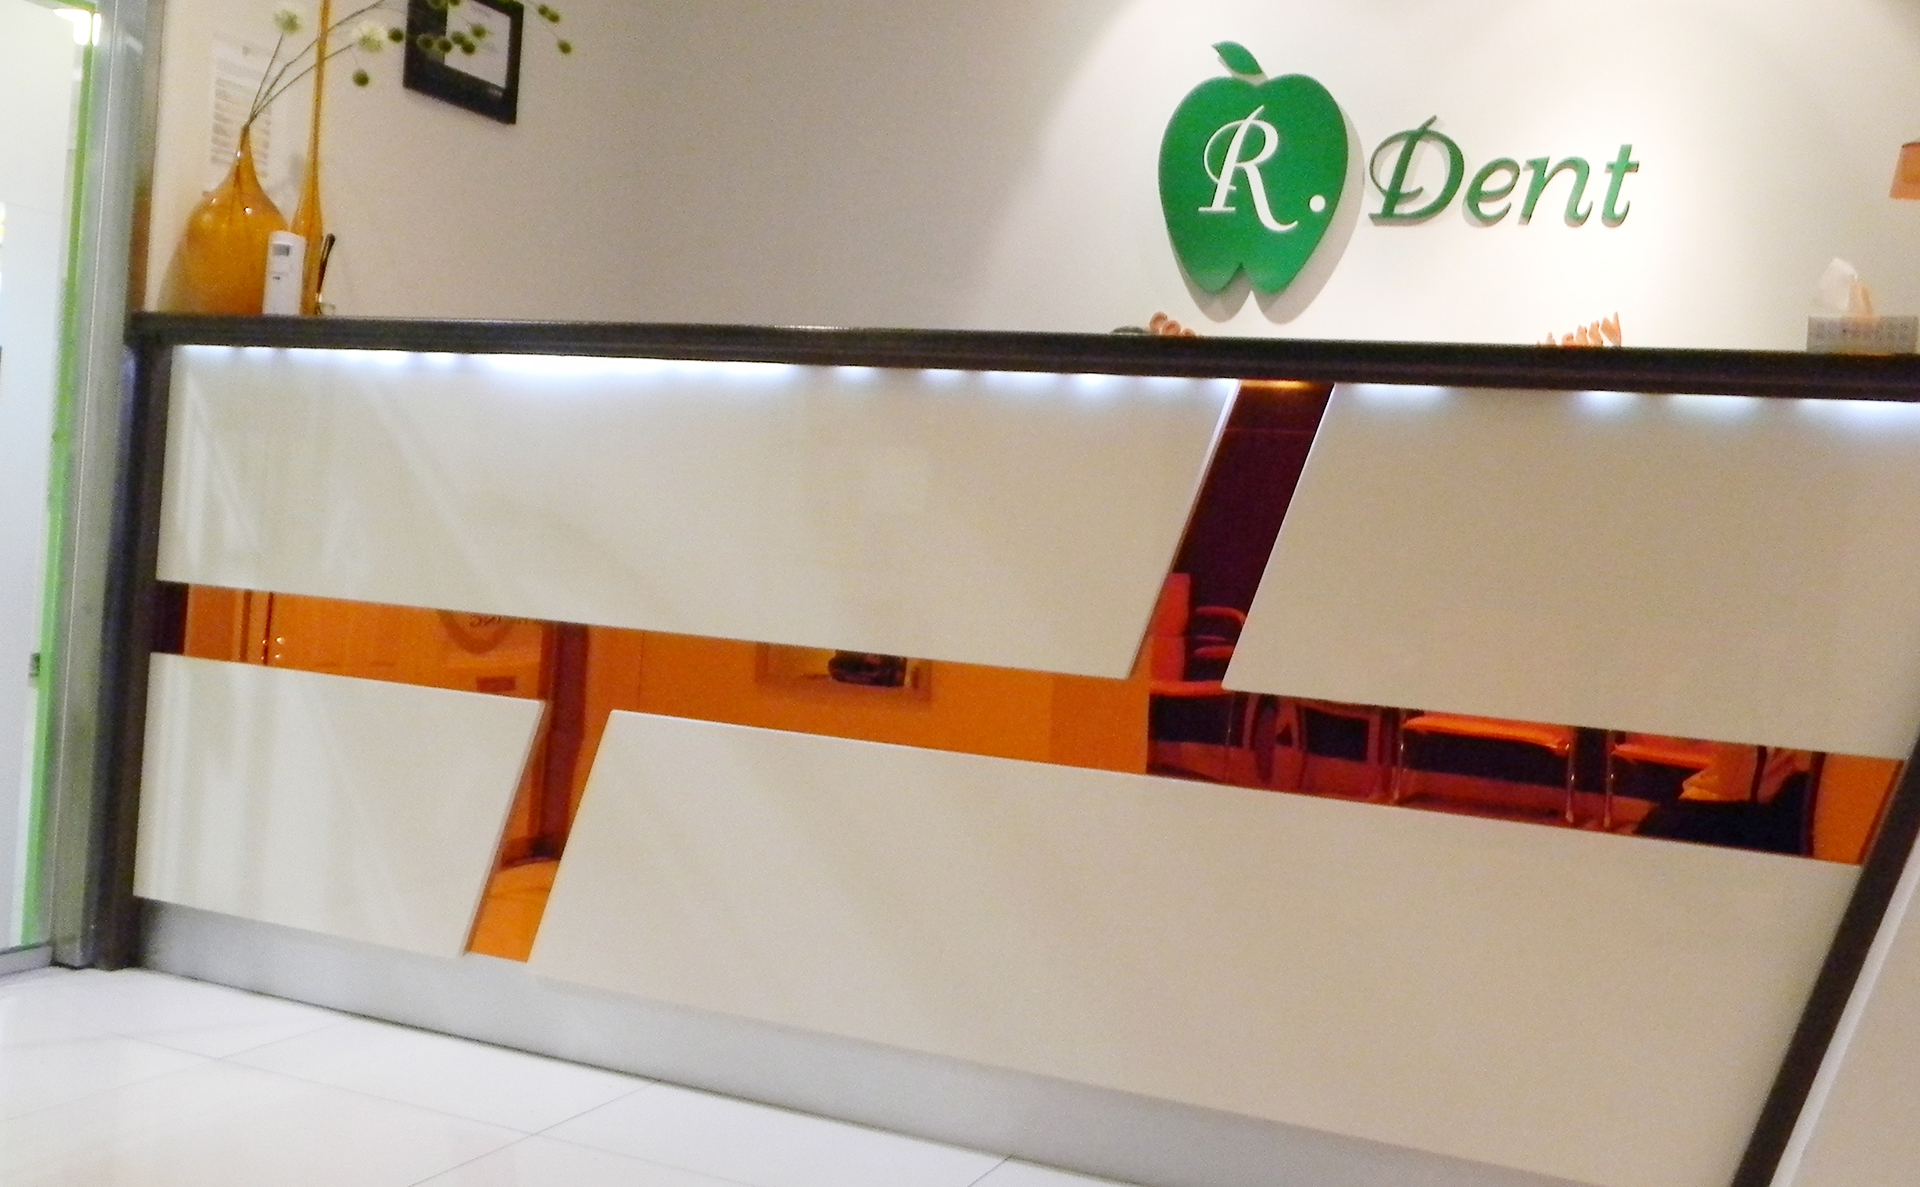 Dentist in Galway Rdent